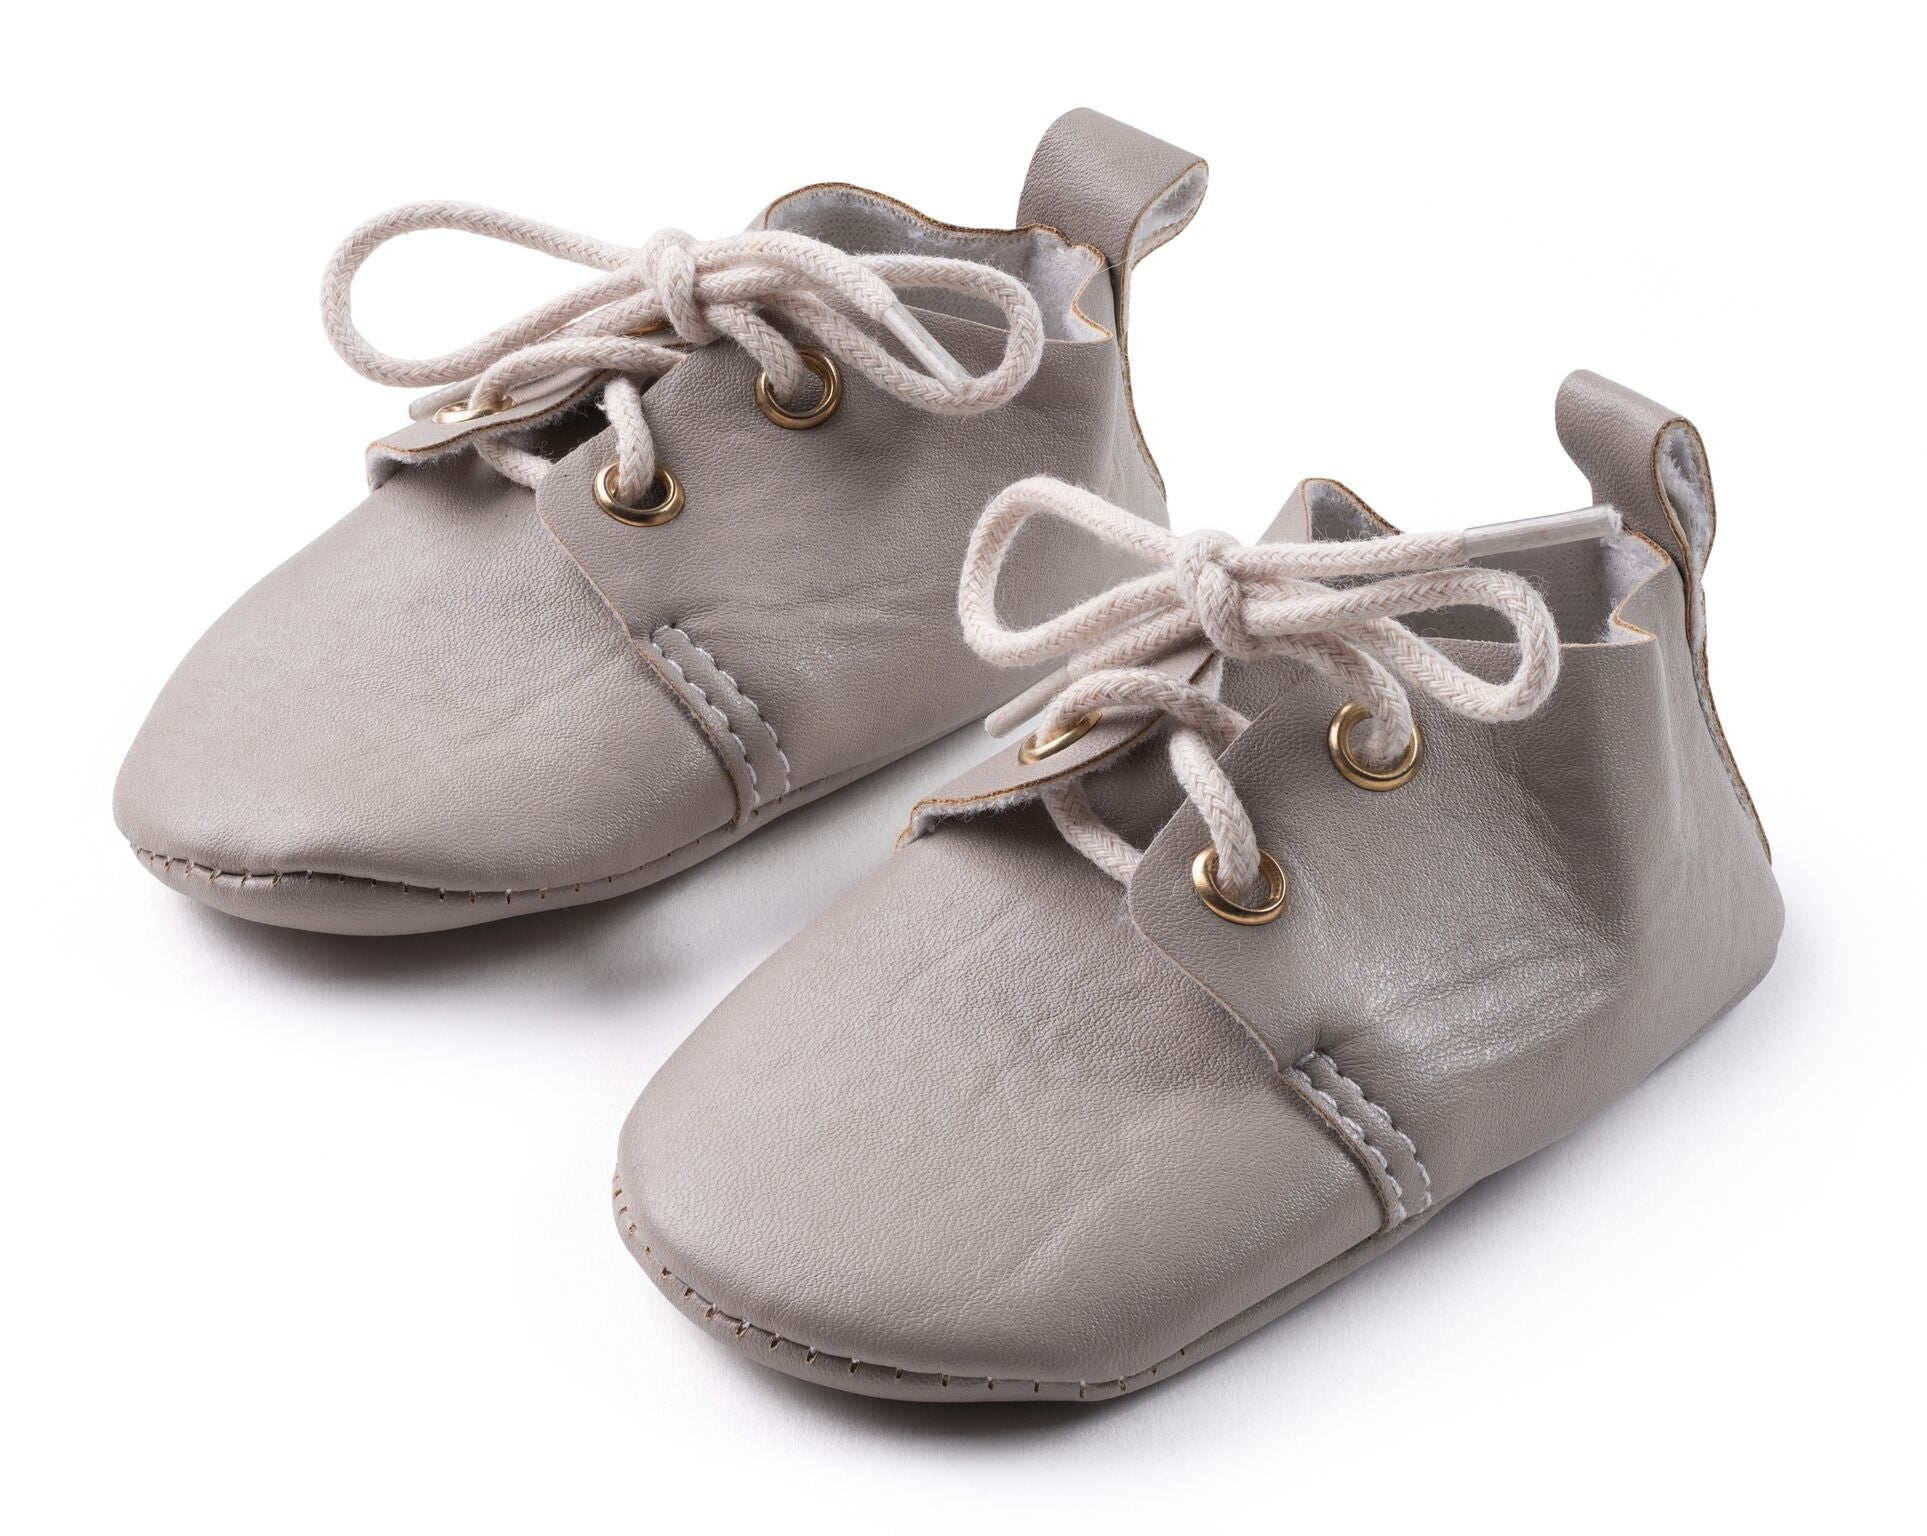 Oxford Pre-walker Baby Shoes - Mouche Kids